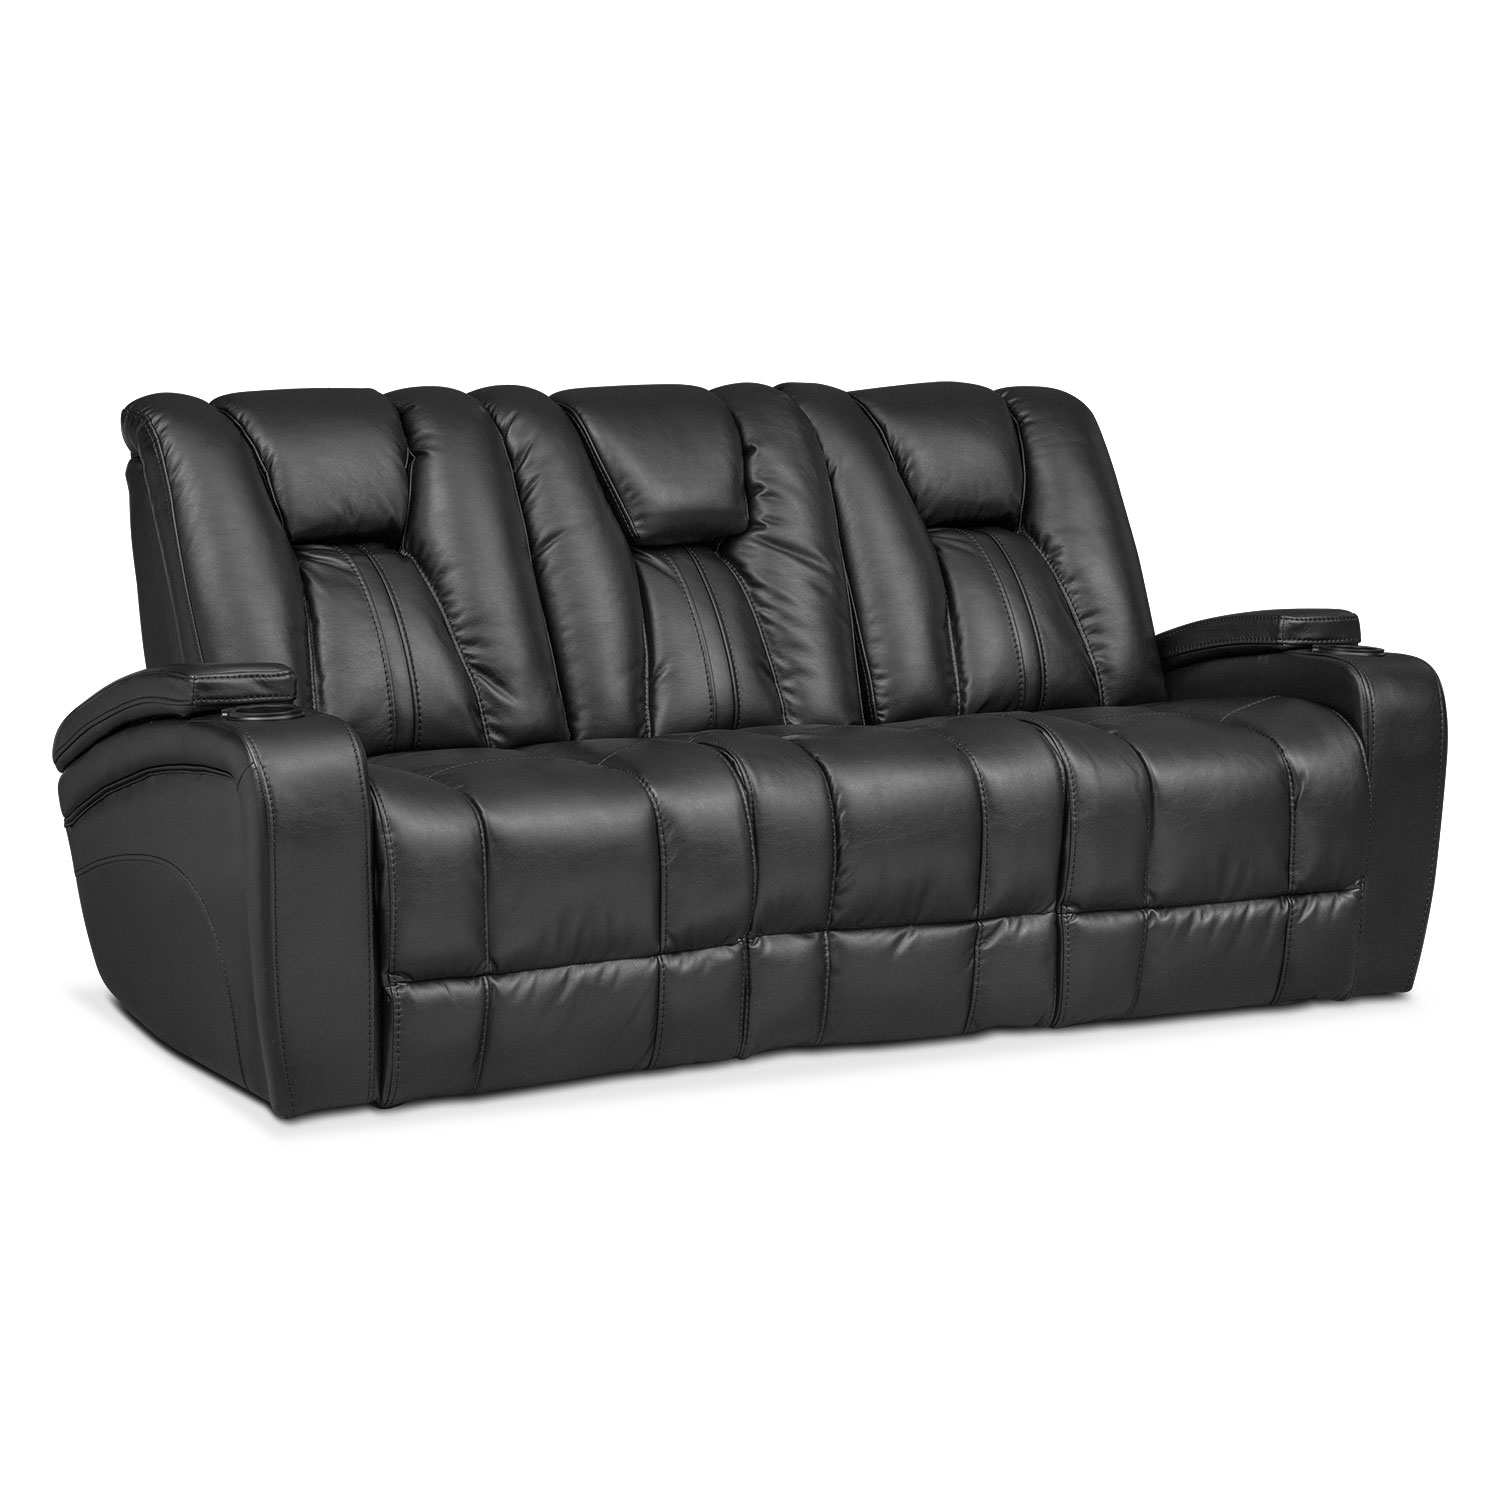 michael clifford dual leather recliner coaster double sofa reclining item s brown products b number